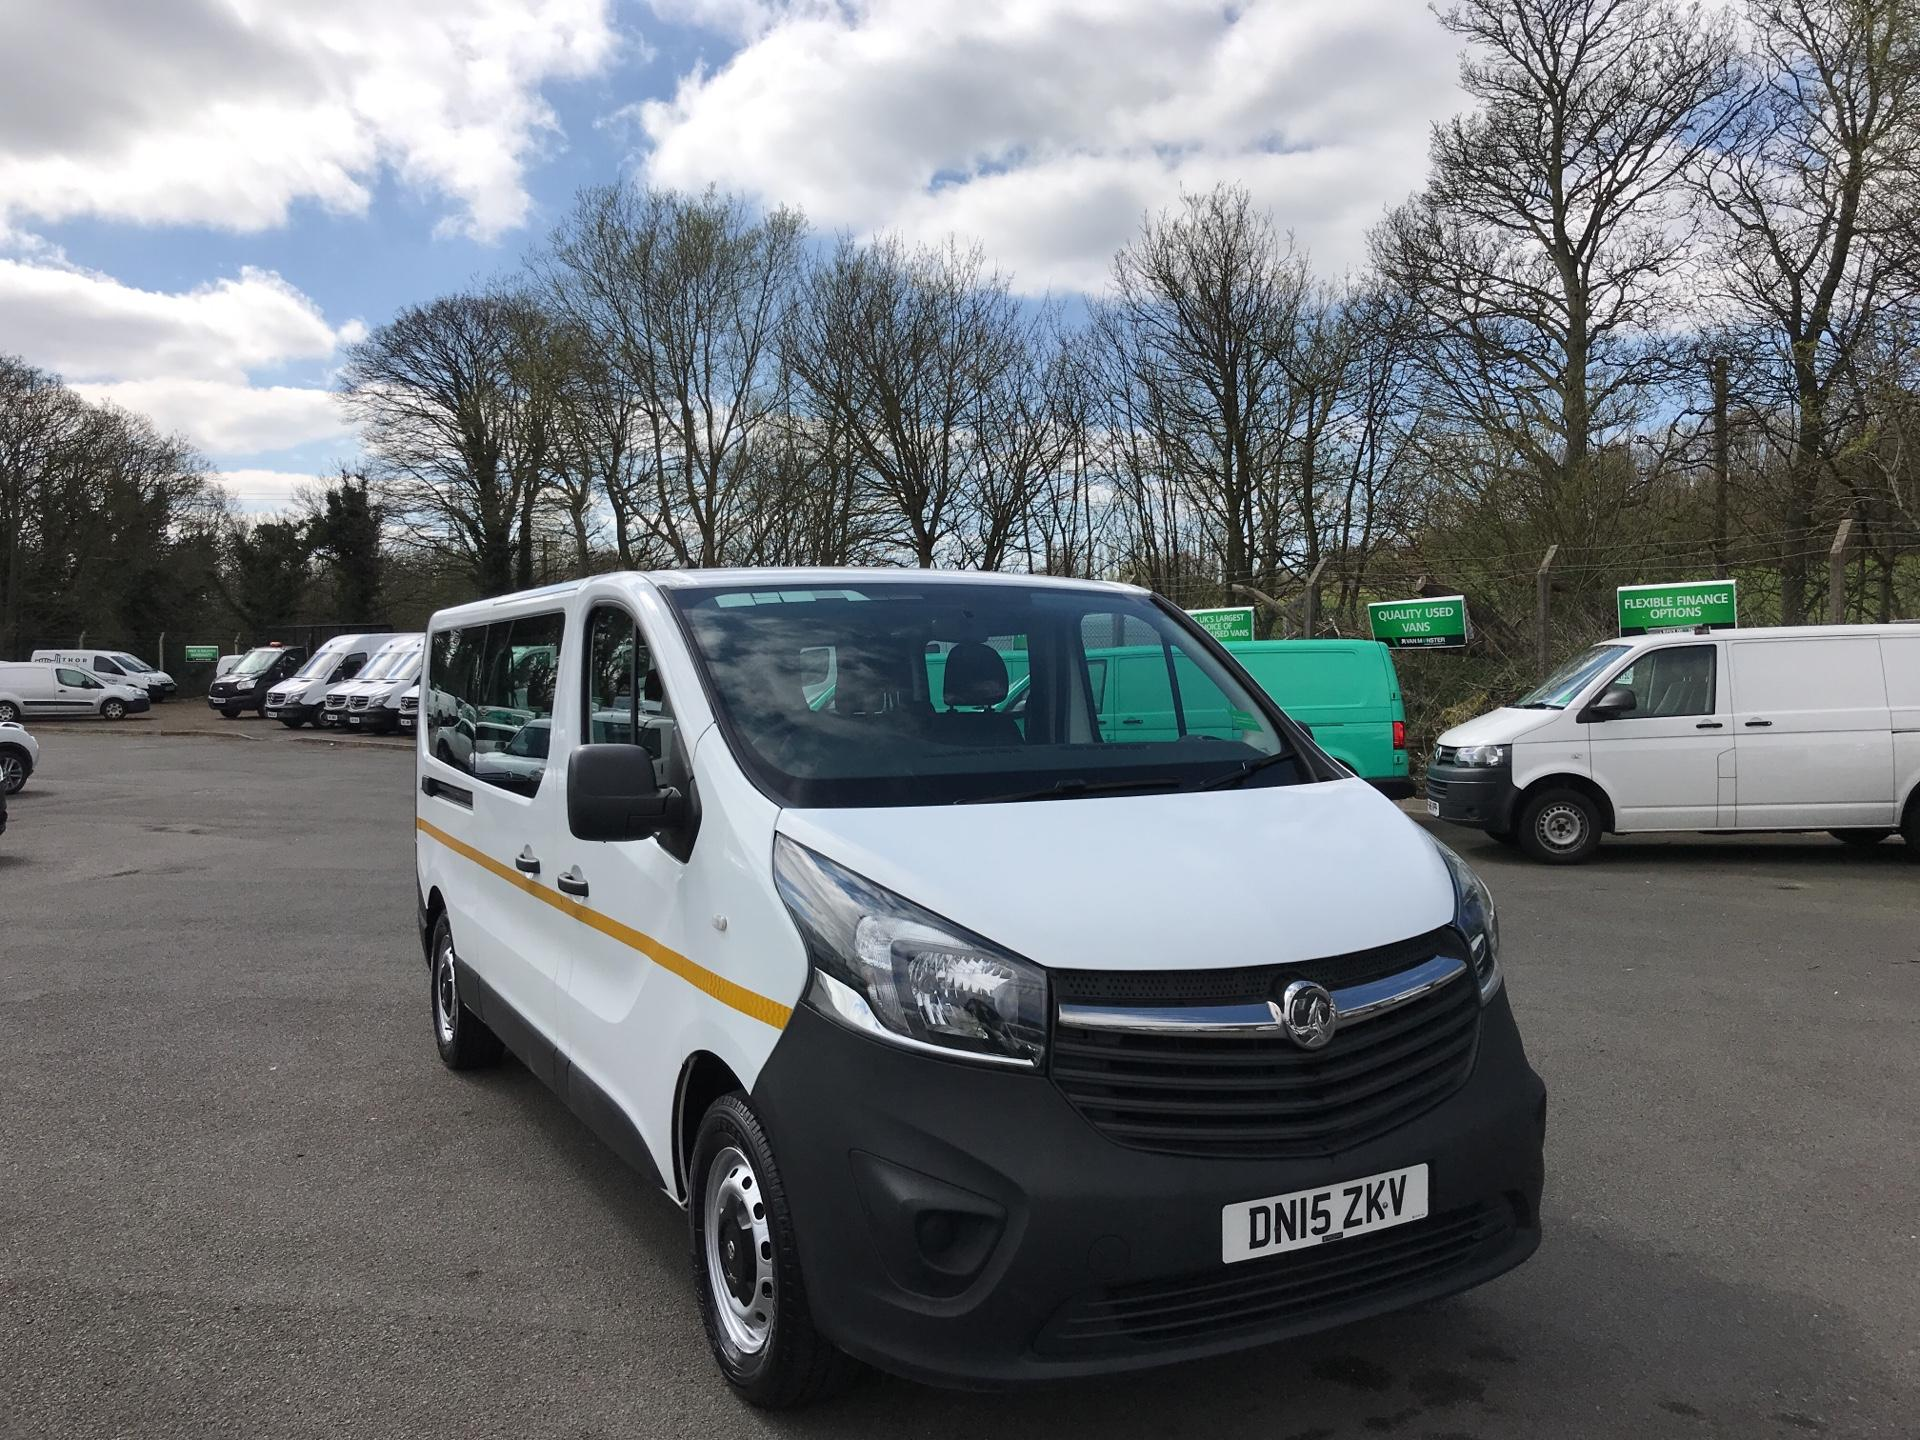 dcf540c349 Used Vauxhall Vans for Sale in Burton On Trent